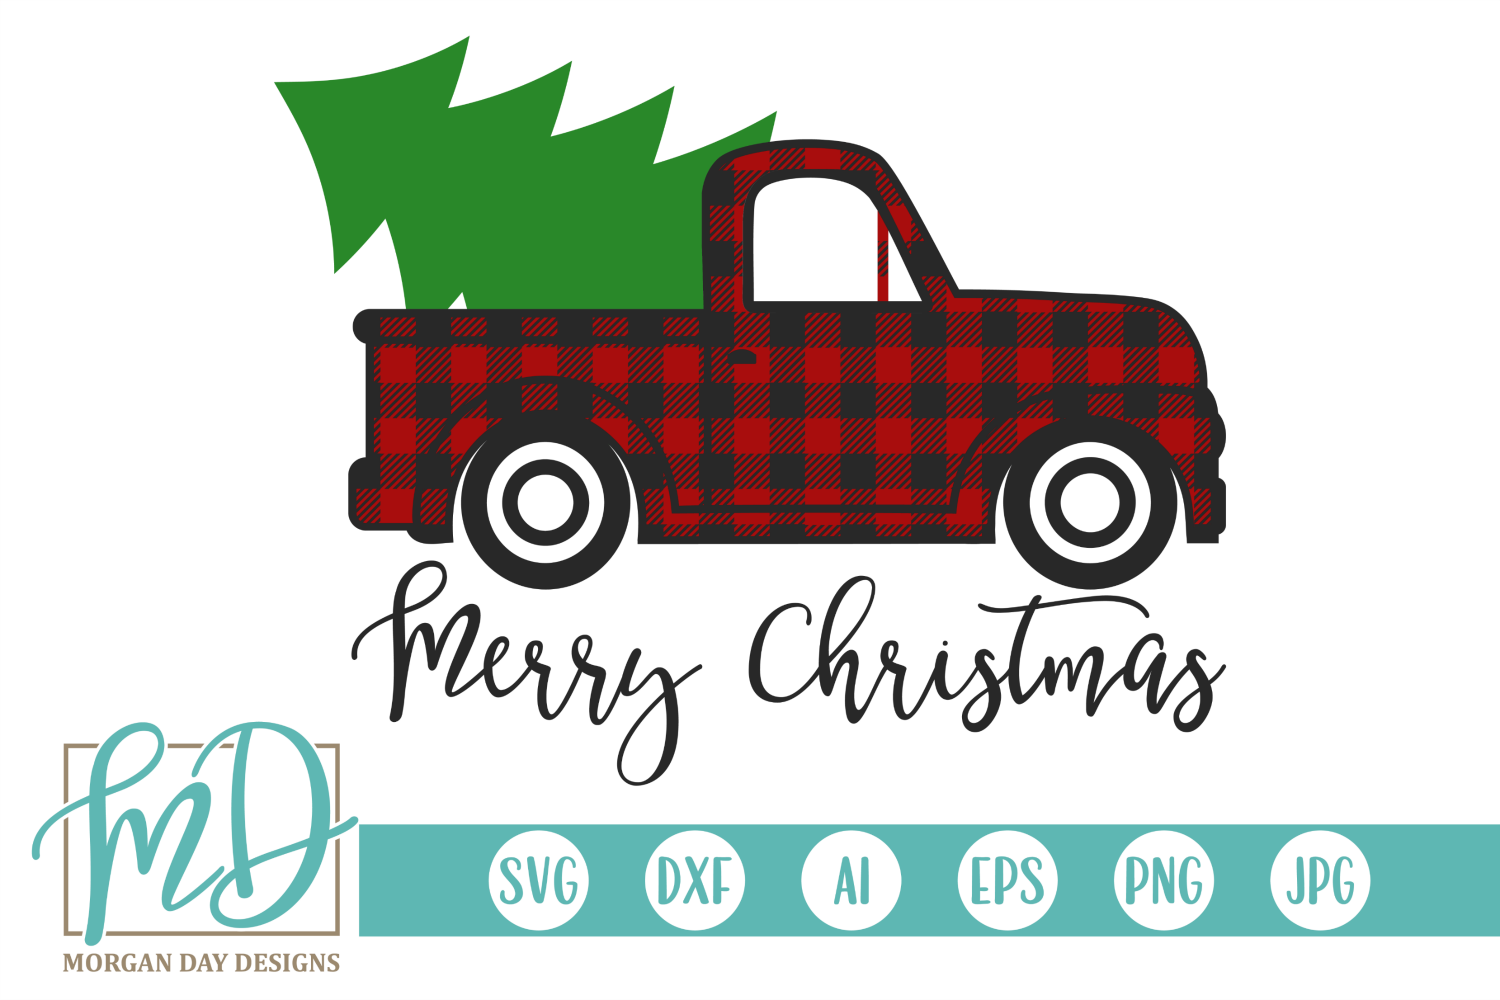 Merry Christmas - Buffalo Plaid Vintage Truck SVG example image 2